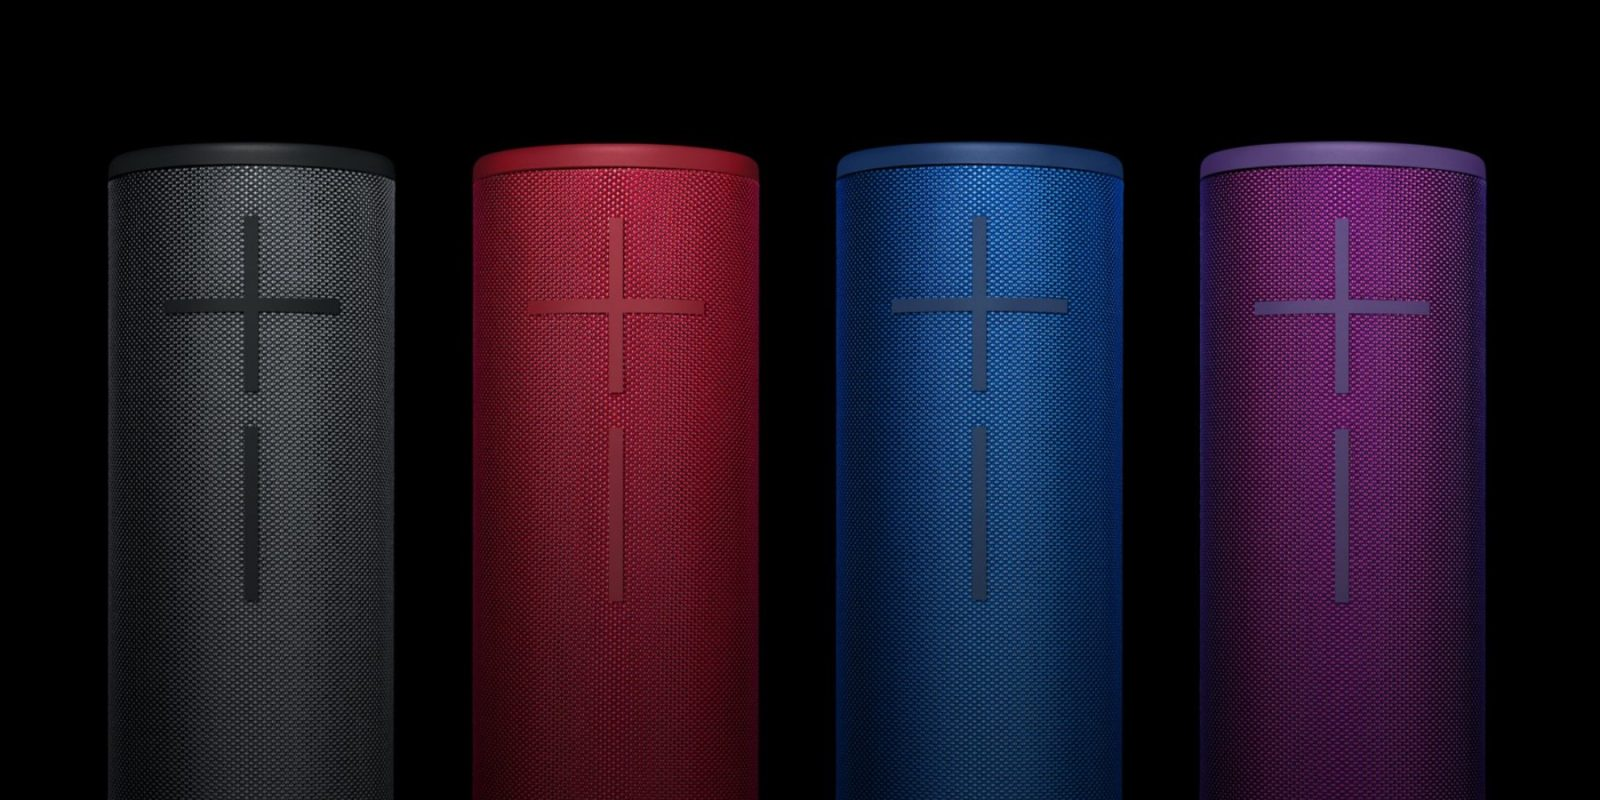 Ultimate Ears' BOOM 3 and MEGABOOM 3 Speakers get up to 20% discount from $120